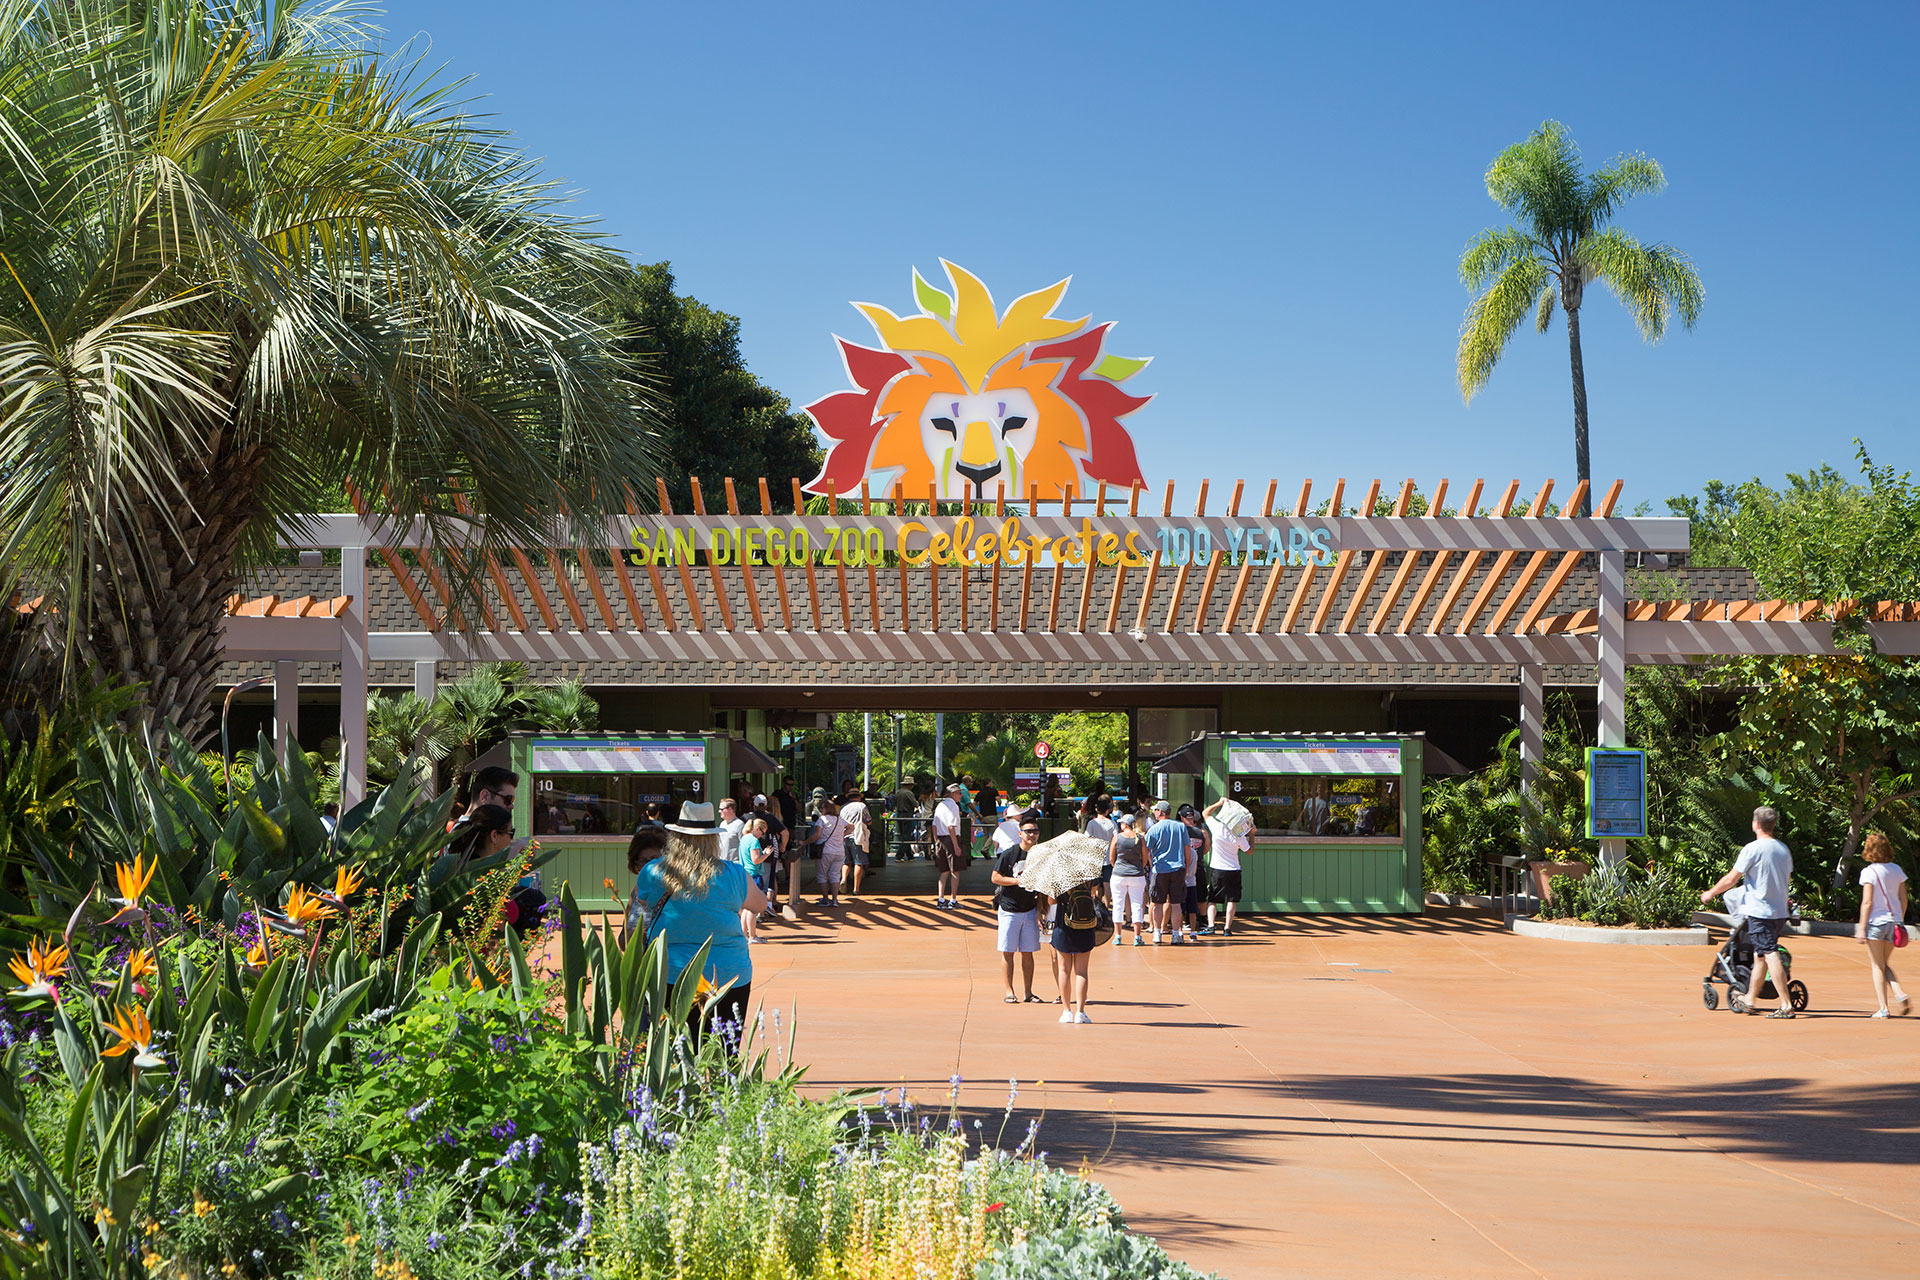 San Diego Zoo Entry Trellis / Ticket Booths / Restrooms